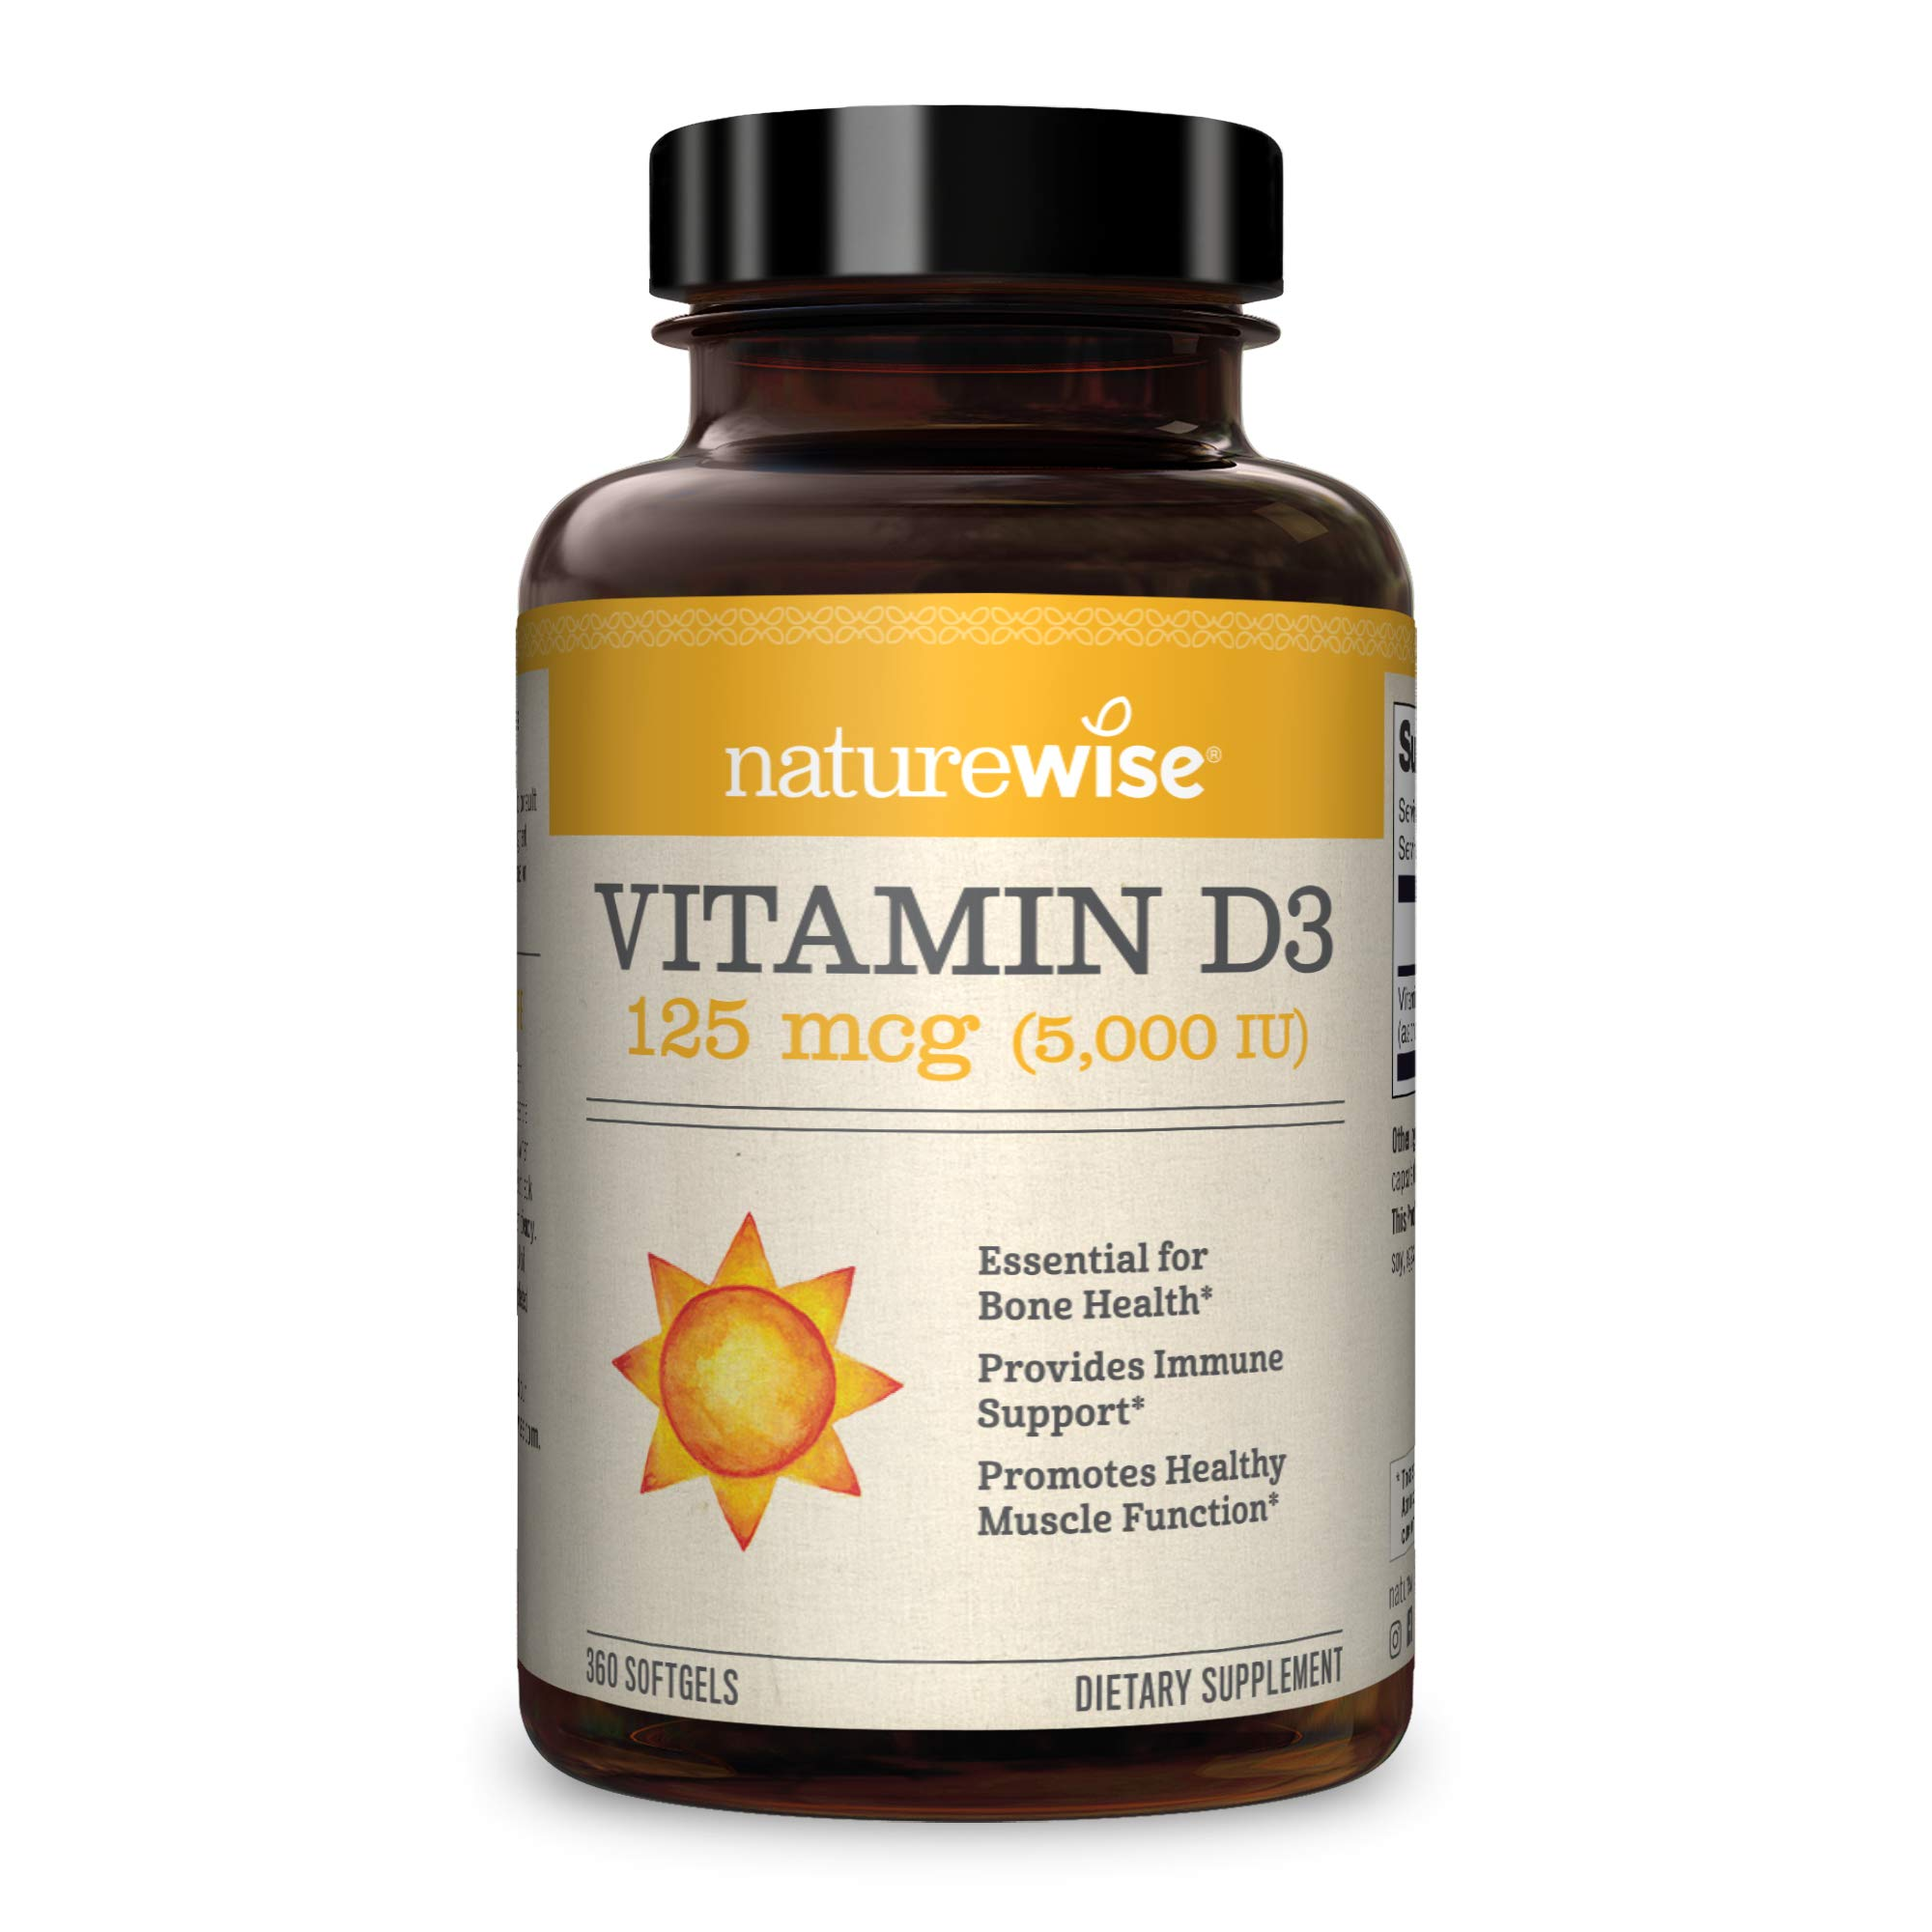 NatureWise Vitamin D3 5000iu (125 mcg) 1 Year Supply for Healthy Muscle Function, Bone Health and Immune Support, Non-GMO, Gluten Free in Cold-Pressed Olive Oil, Packaging May Vary (360 Mini Softgels)